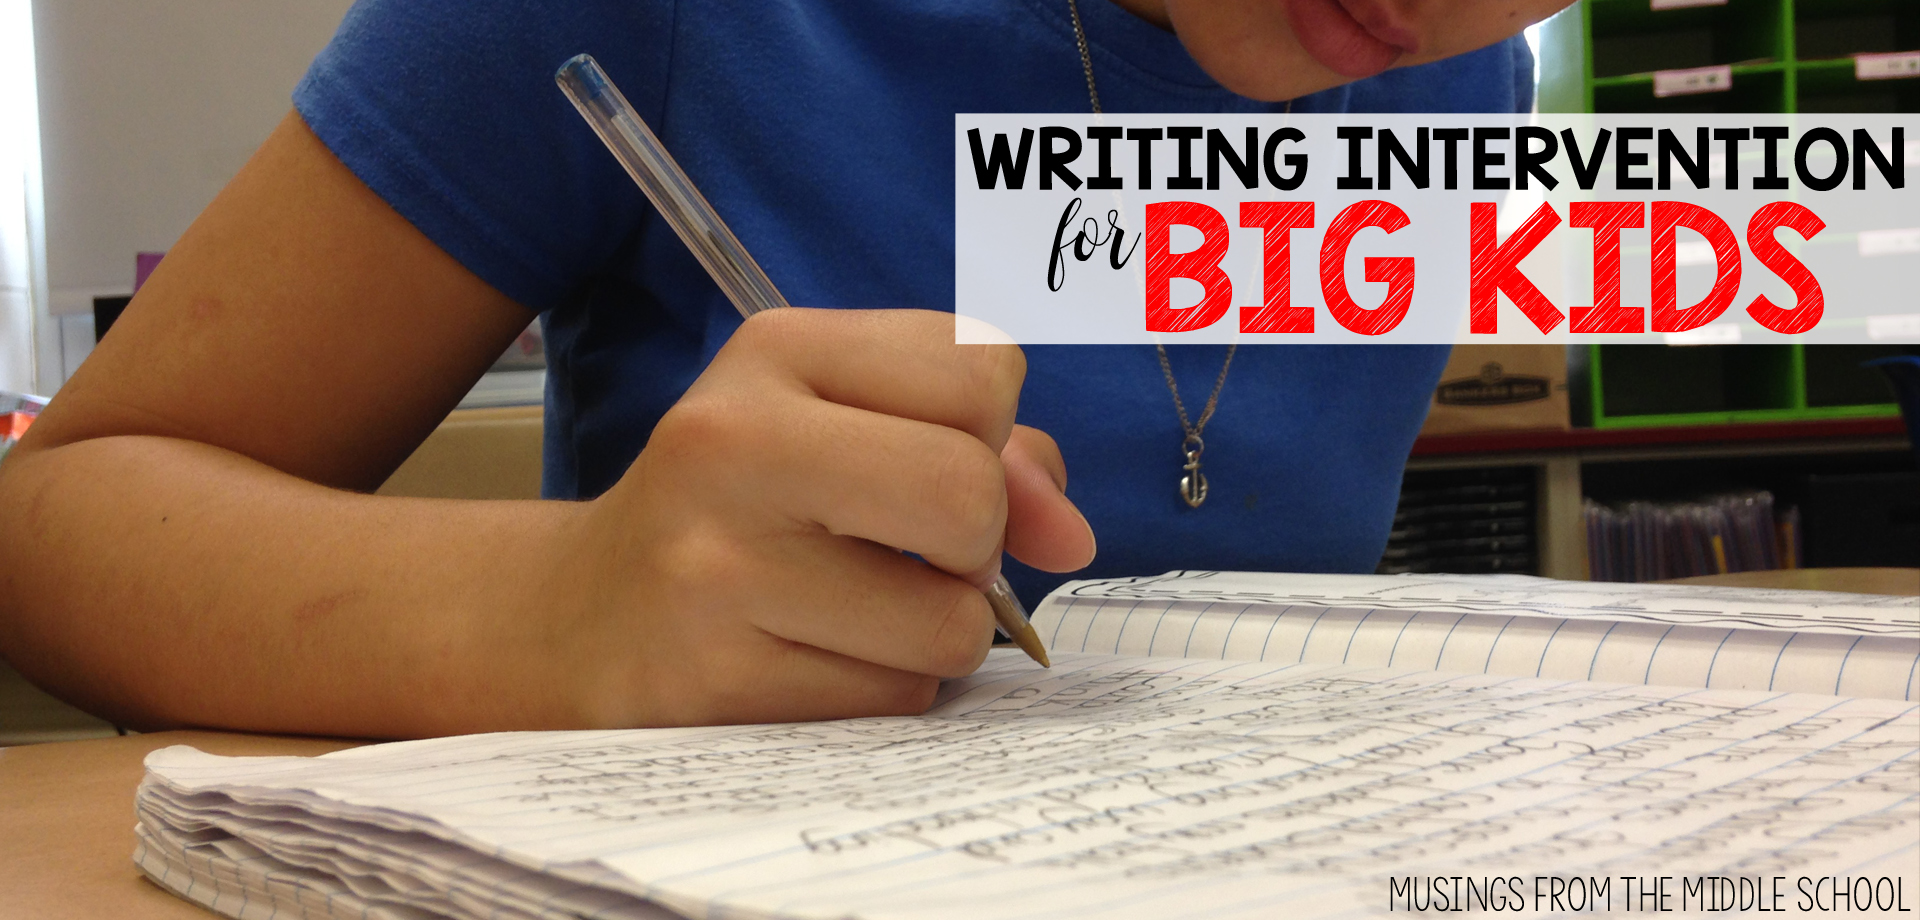 Even middle schoolers can struggle with writing. This Teacher-Author spent the time testing out different interventions to bring you tips that work!